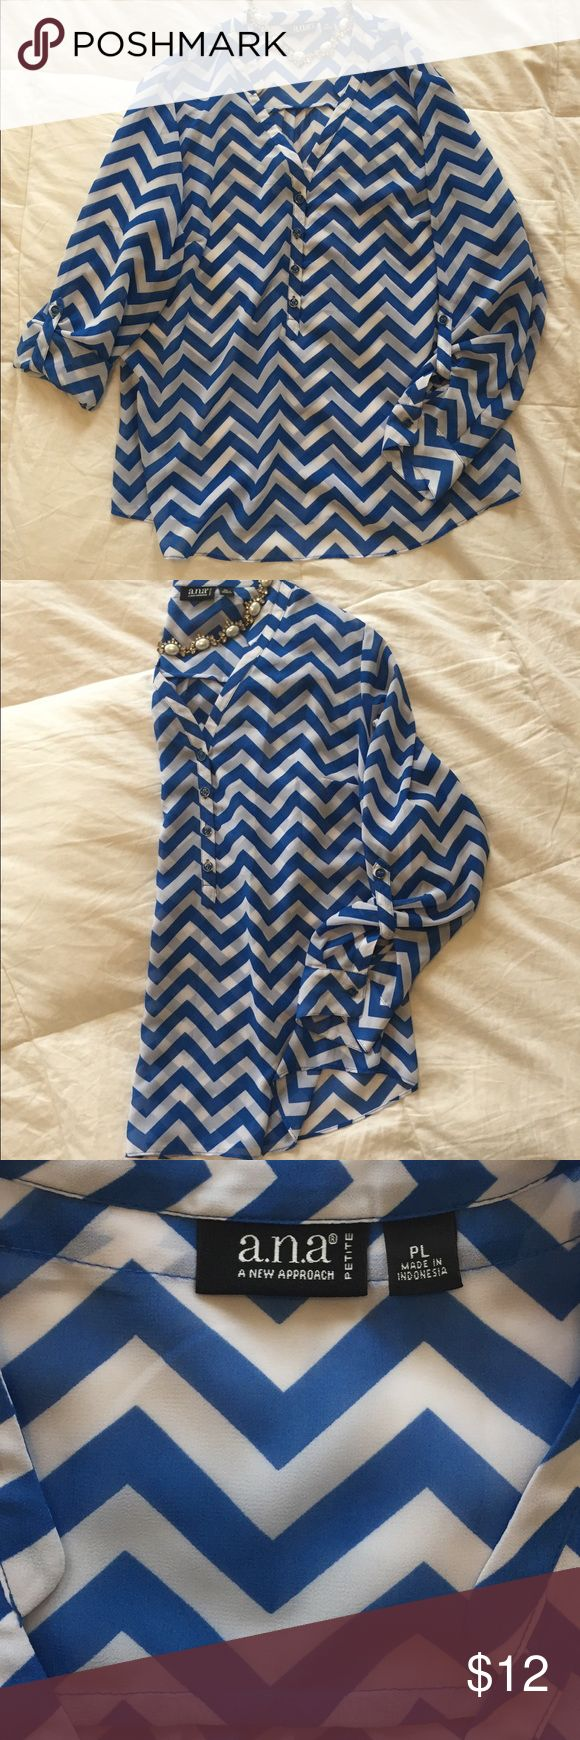 Comfy chevron blouse Blue and white chevron blouse. Size Petite Large. Great condition. Pet and smoke free home. a.n.a Tops Blouses